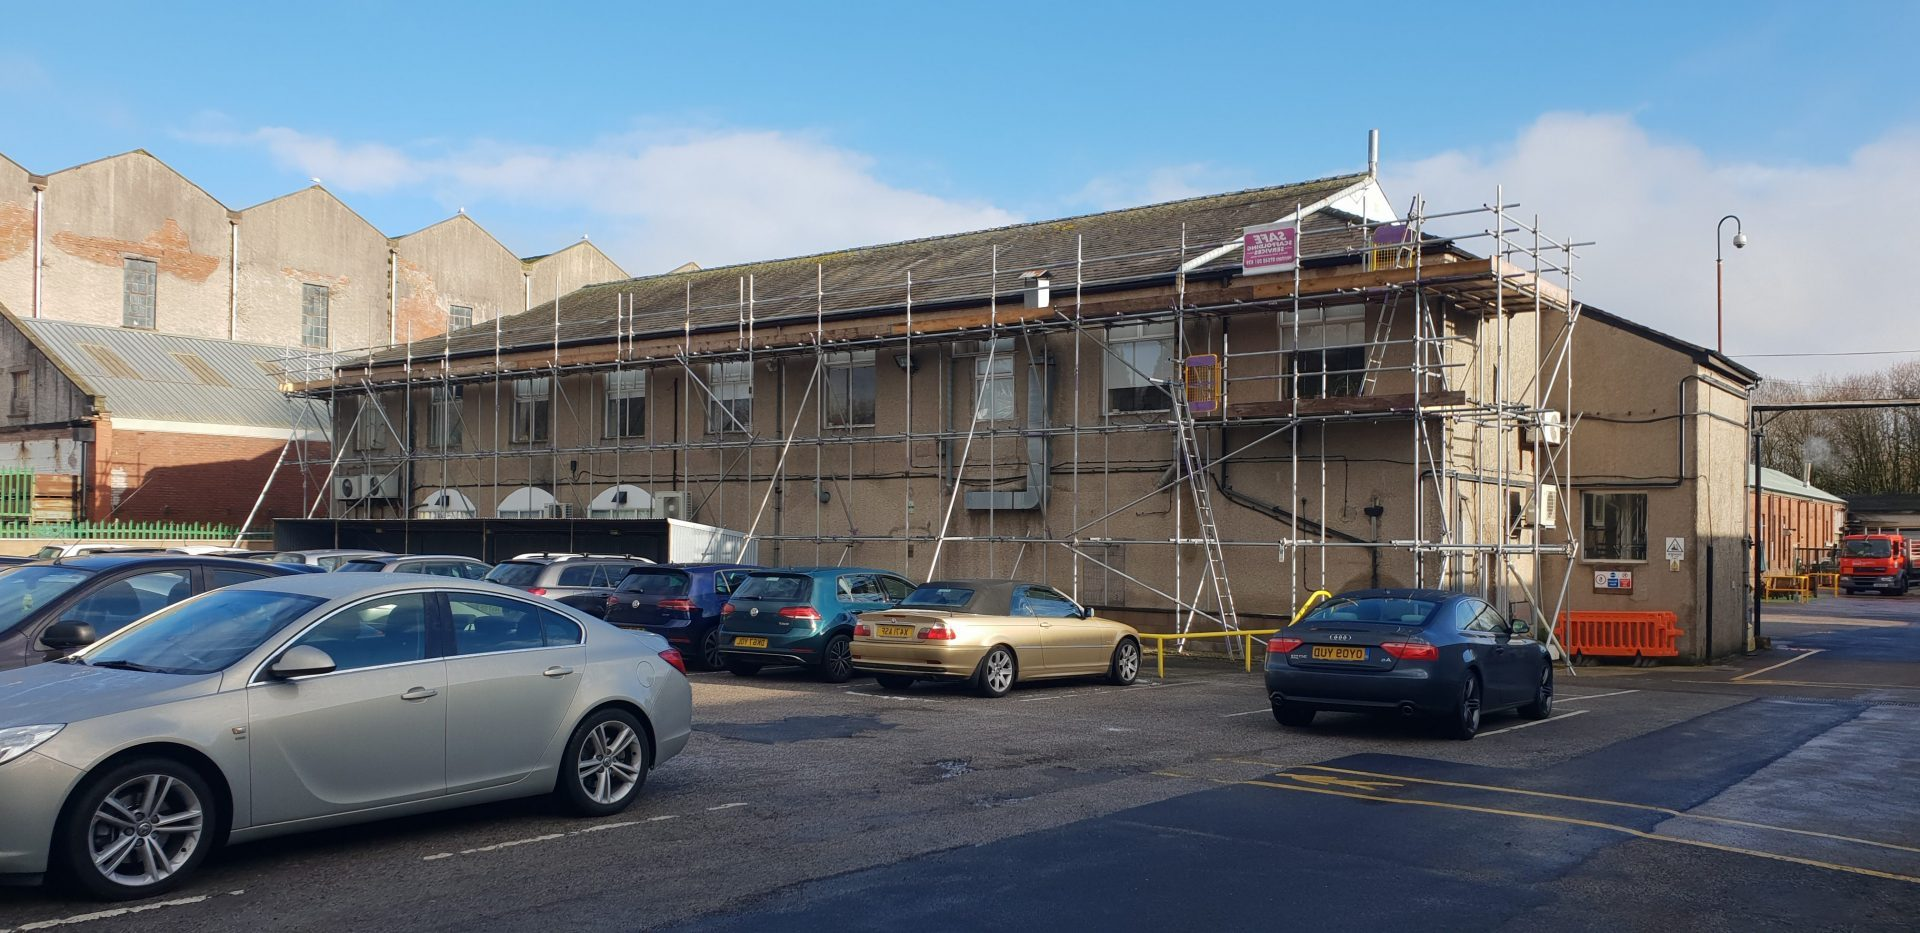 Independant Tied Scaffold for roof repairs